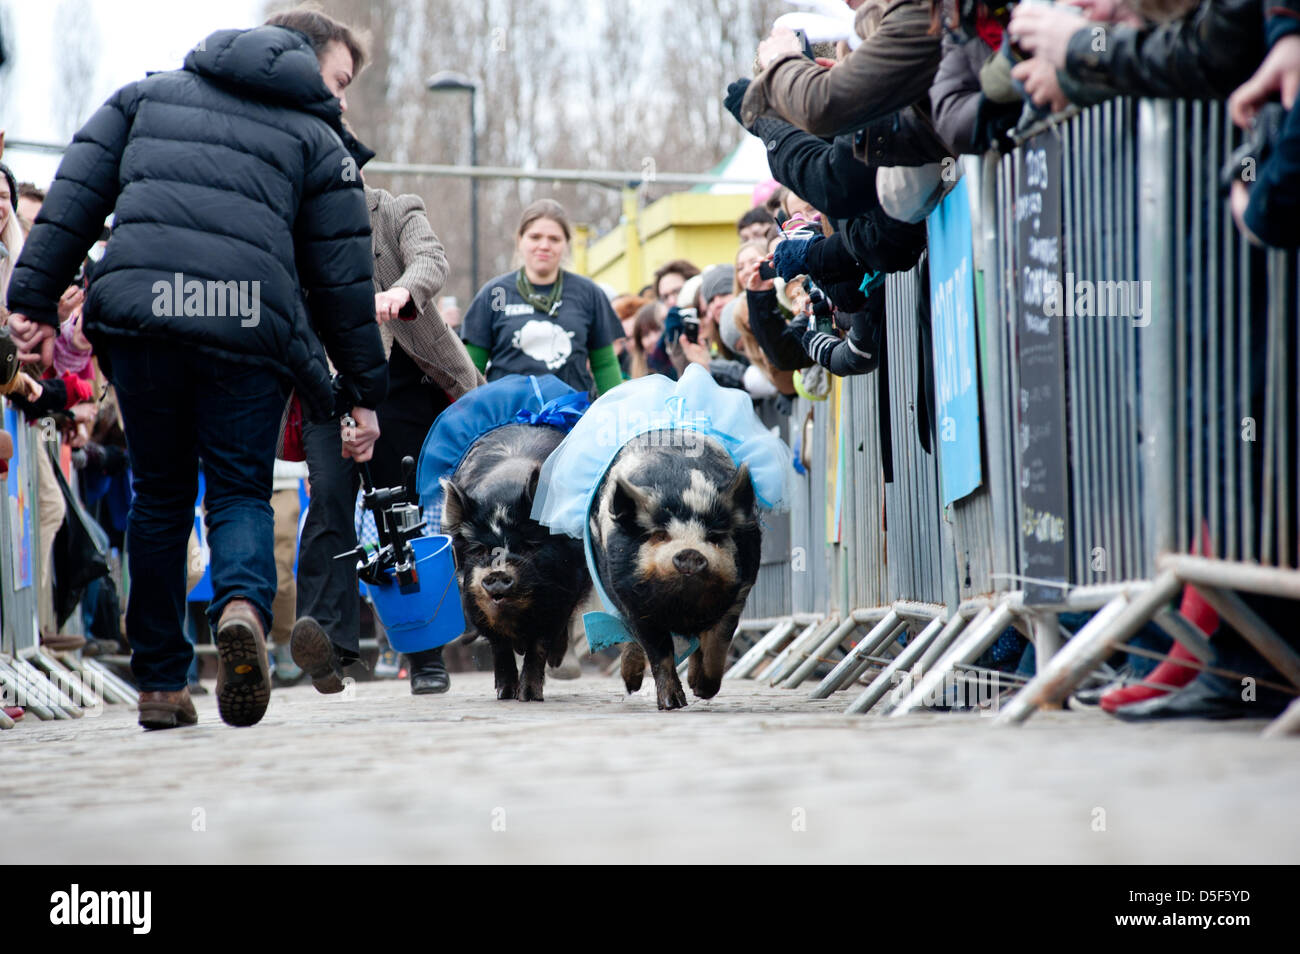 London, UK - 31 March 2013: pigs race during the 5th Annual Oxford and Cambridge Goat Race that takes place at Spitalfields - Stock Image